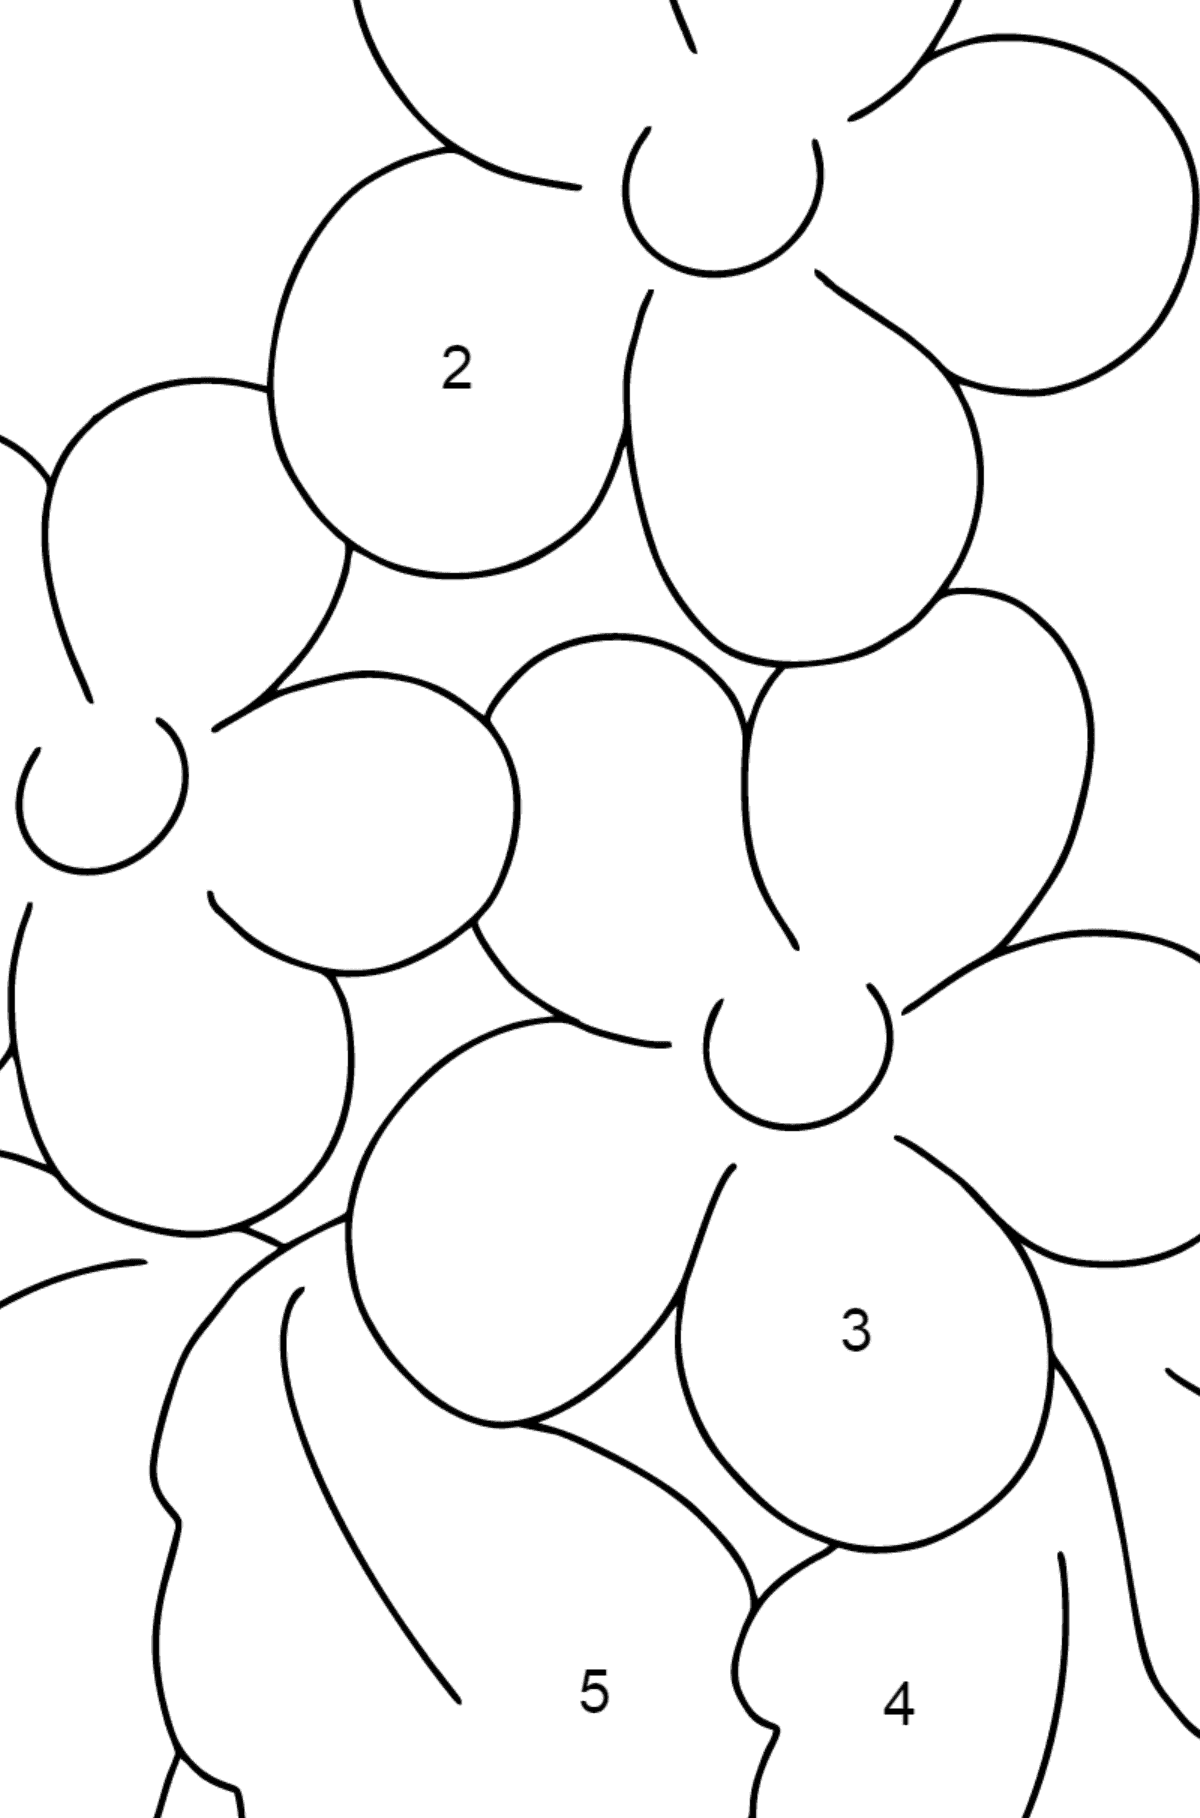 Coloring Page - Spring and Flowers - Coloring by Numbers for Children